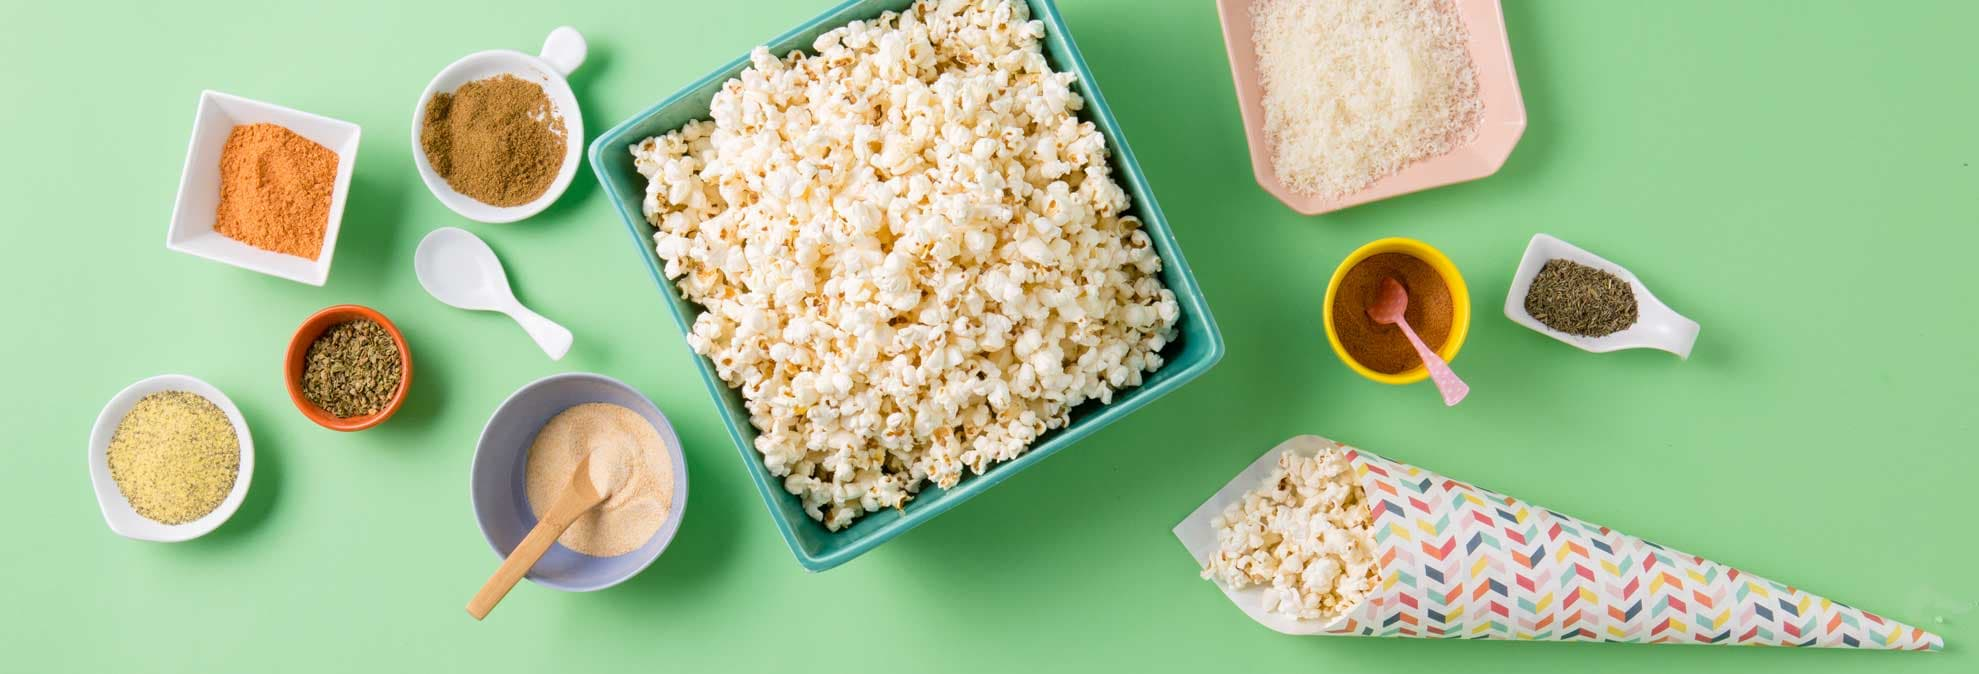 How to Make Great Stovetop Popcorn